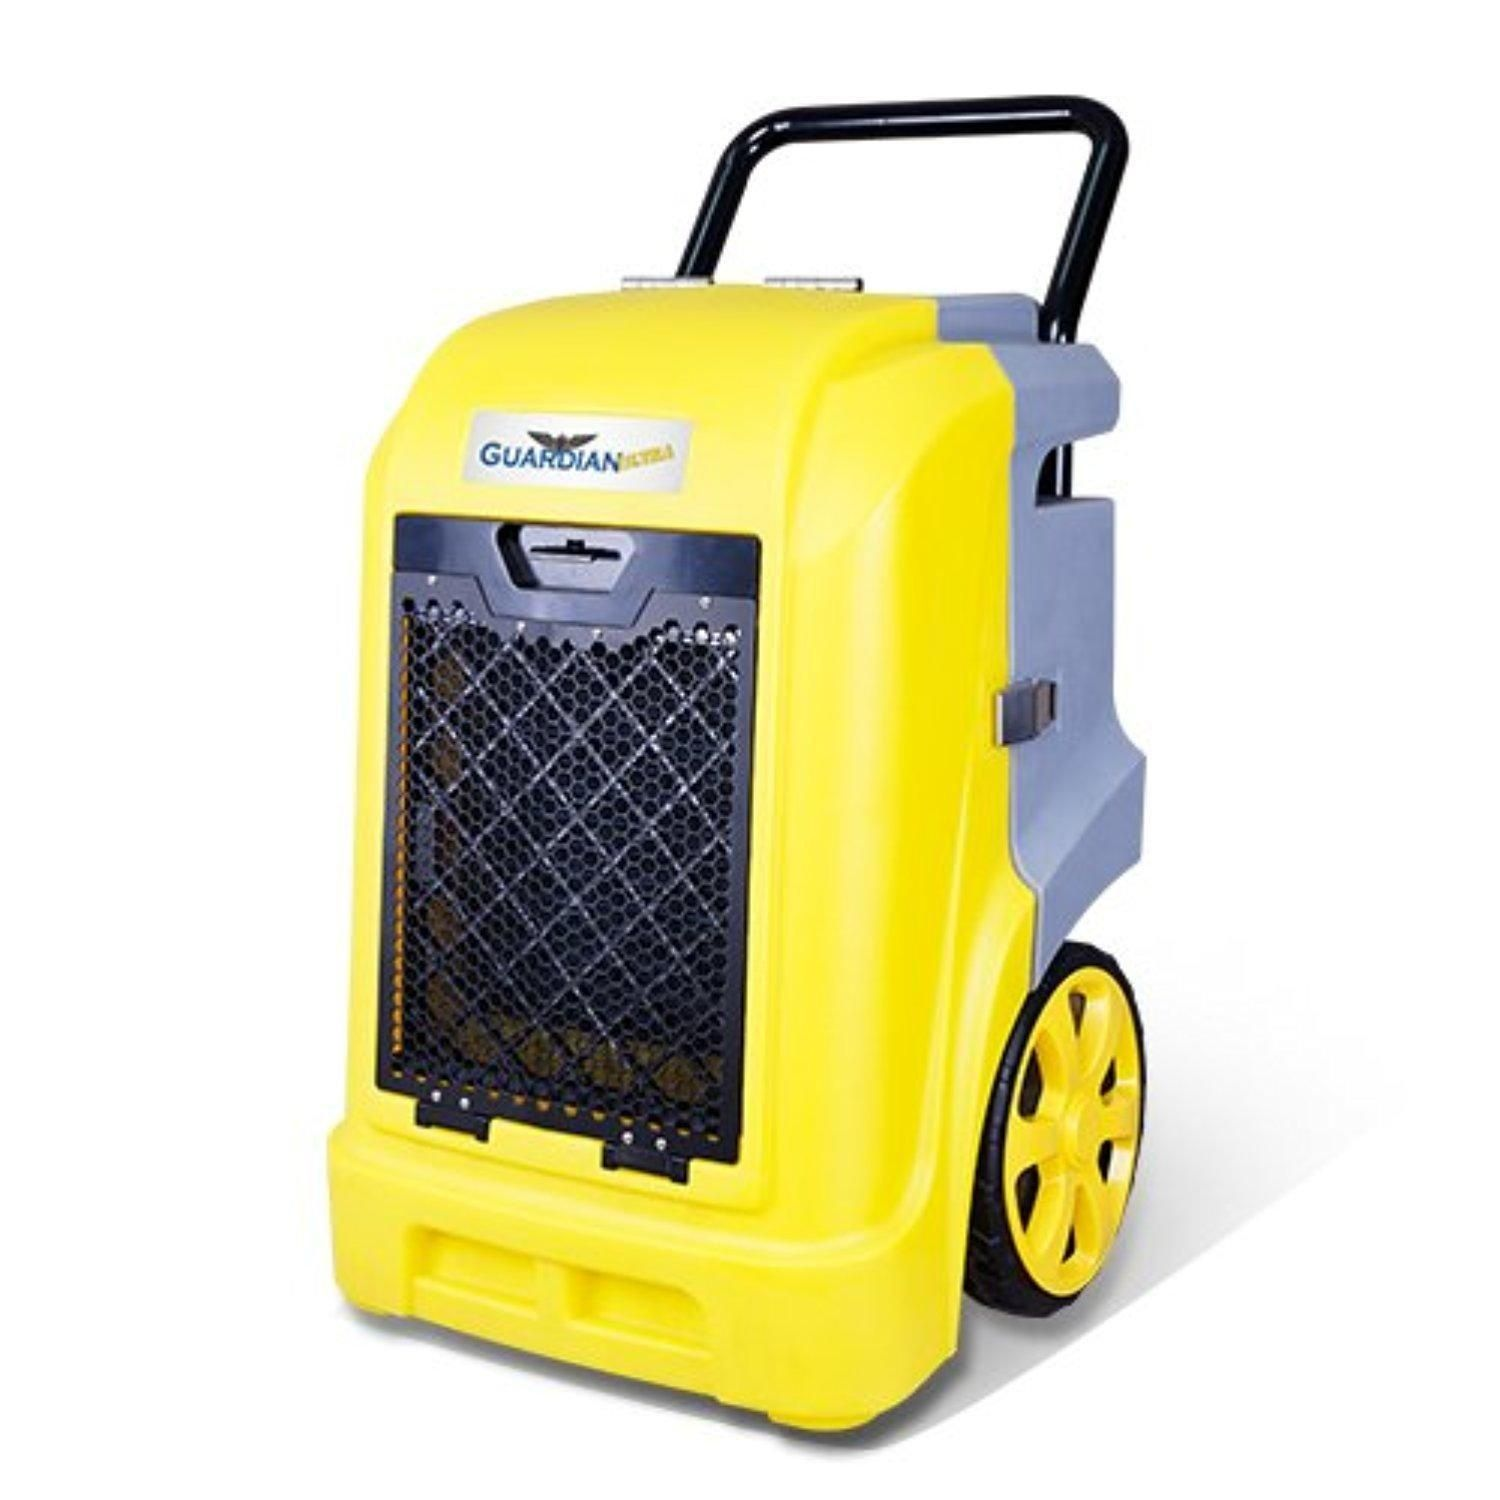 Alorair Dehumidifiers For Water Damage Restoration Carpet Cleaning And Building Dryer 70 125 Pint Carpet Cleaning Hacks How To Clean Carpet Damage Restoration